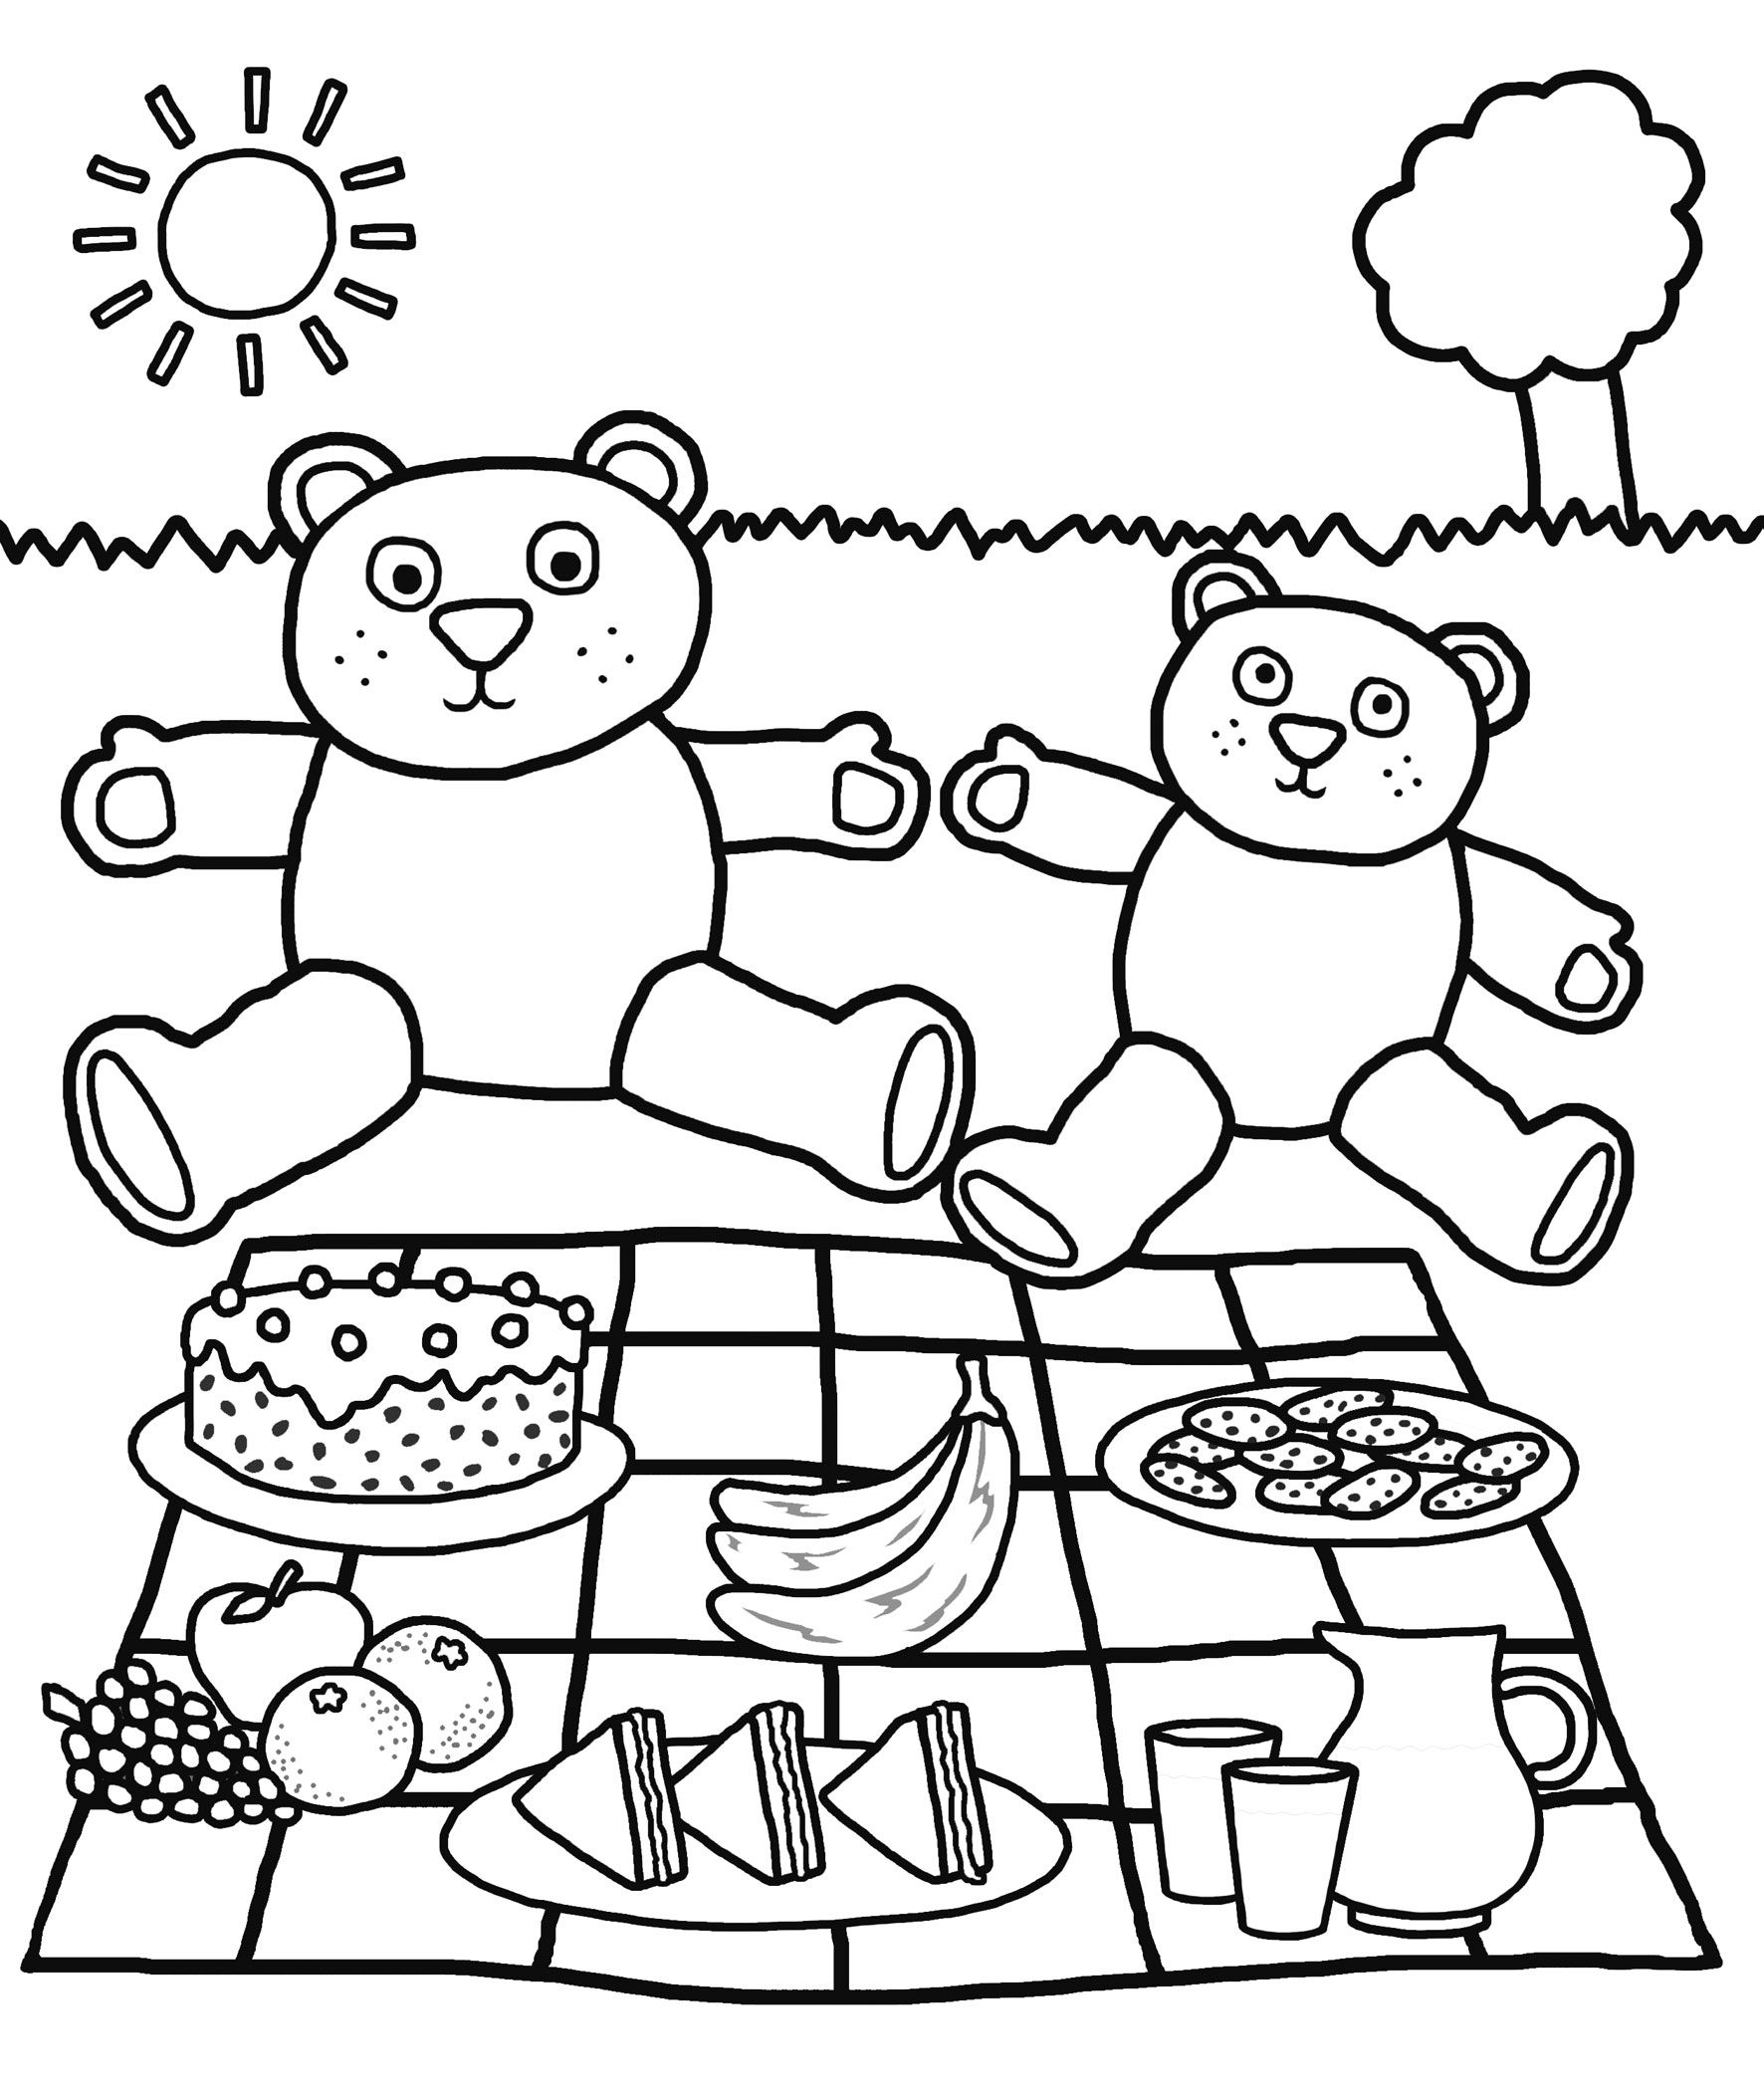 Coloring Sheet Kindergarten In 2020 Teddy Bear Coloring Pages